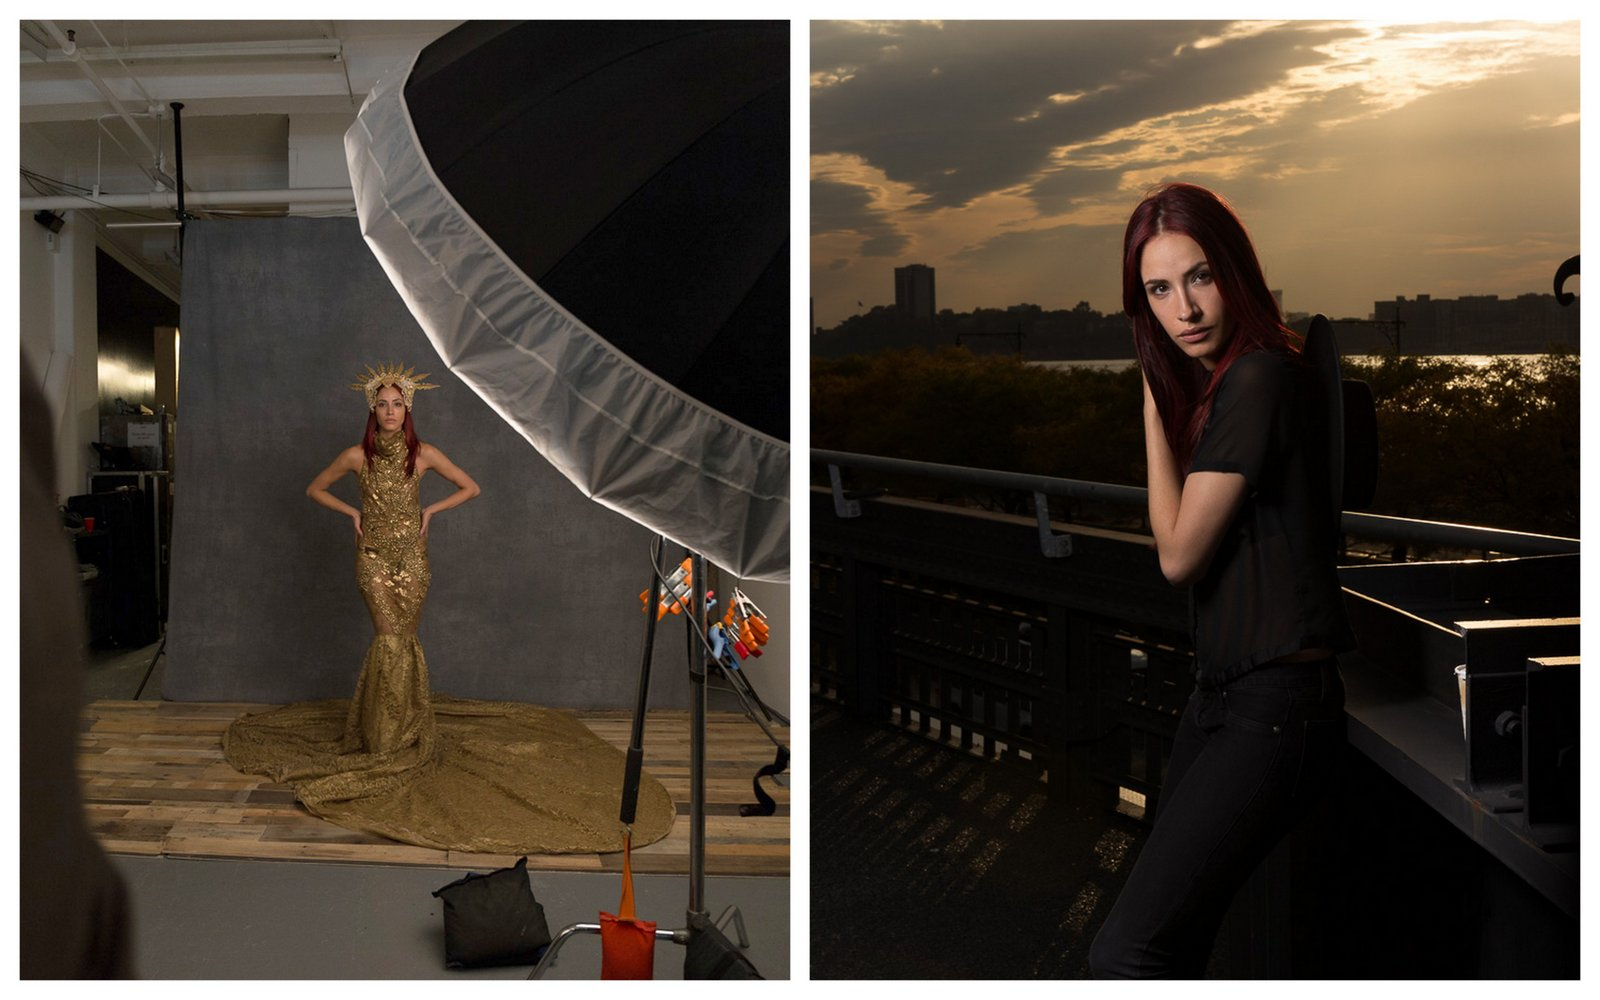 Images I took during a class with fashion photographer Lindsay Adler